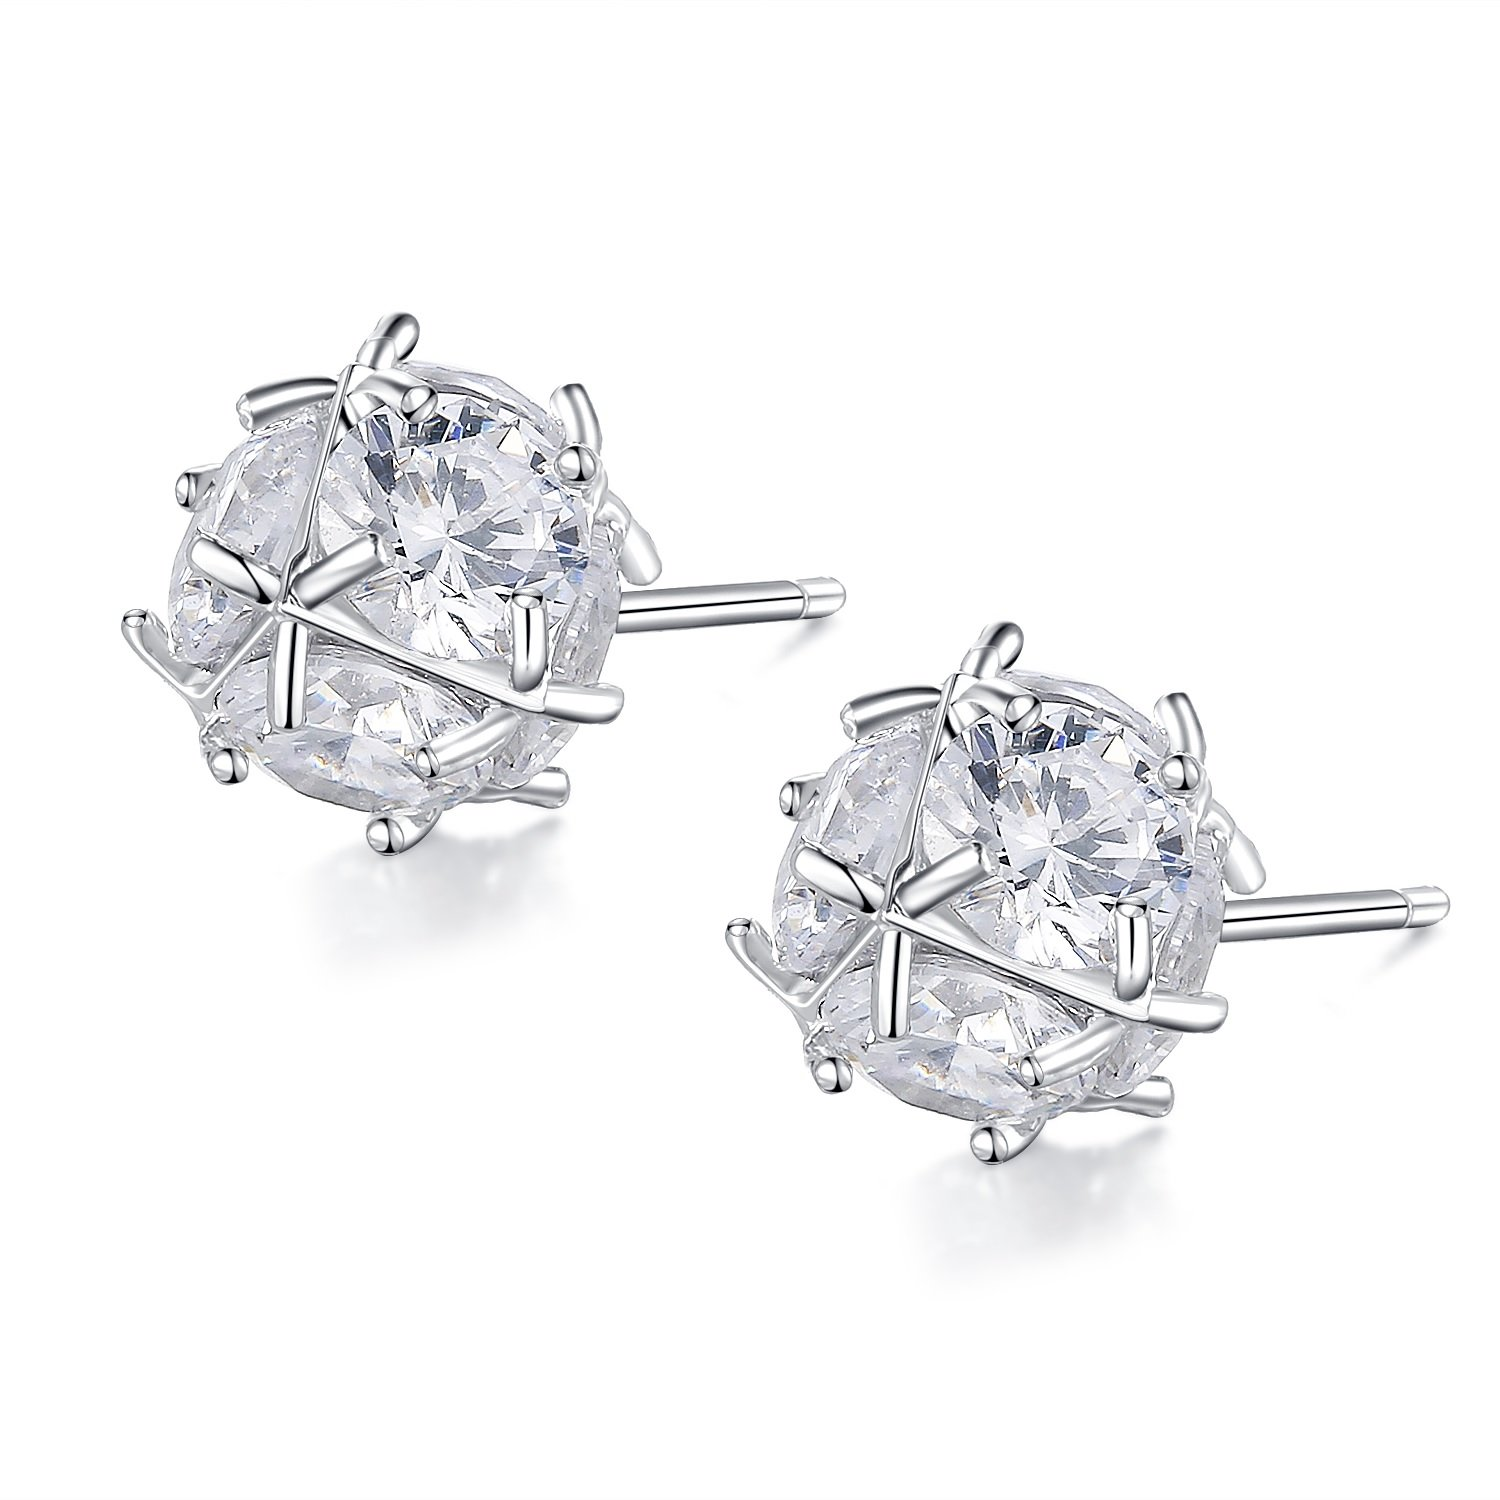 Arieanna Sterling Silver Unisex Zirconia Crystal Cubic Stud Earrings 8mm (Two Pairs) (1 PAIR)